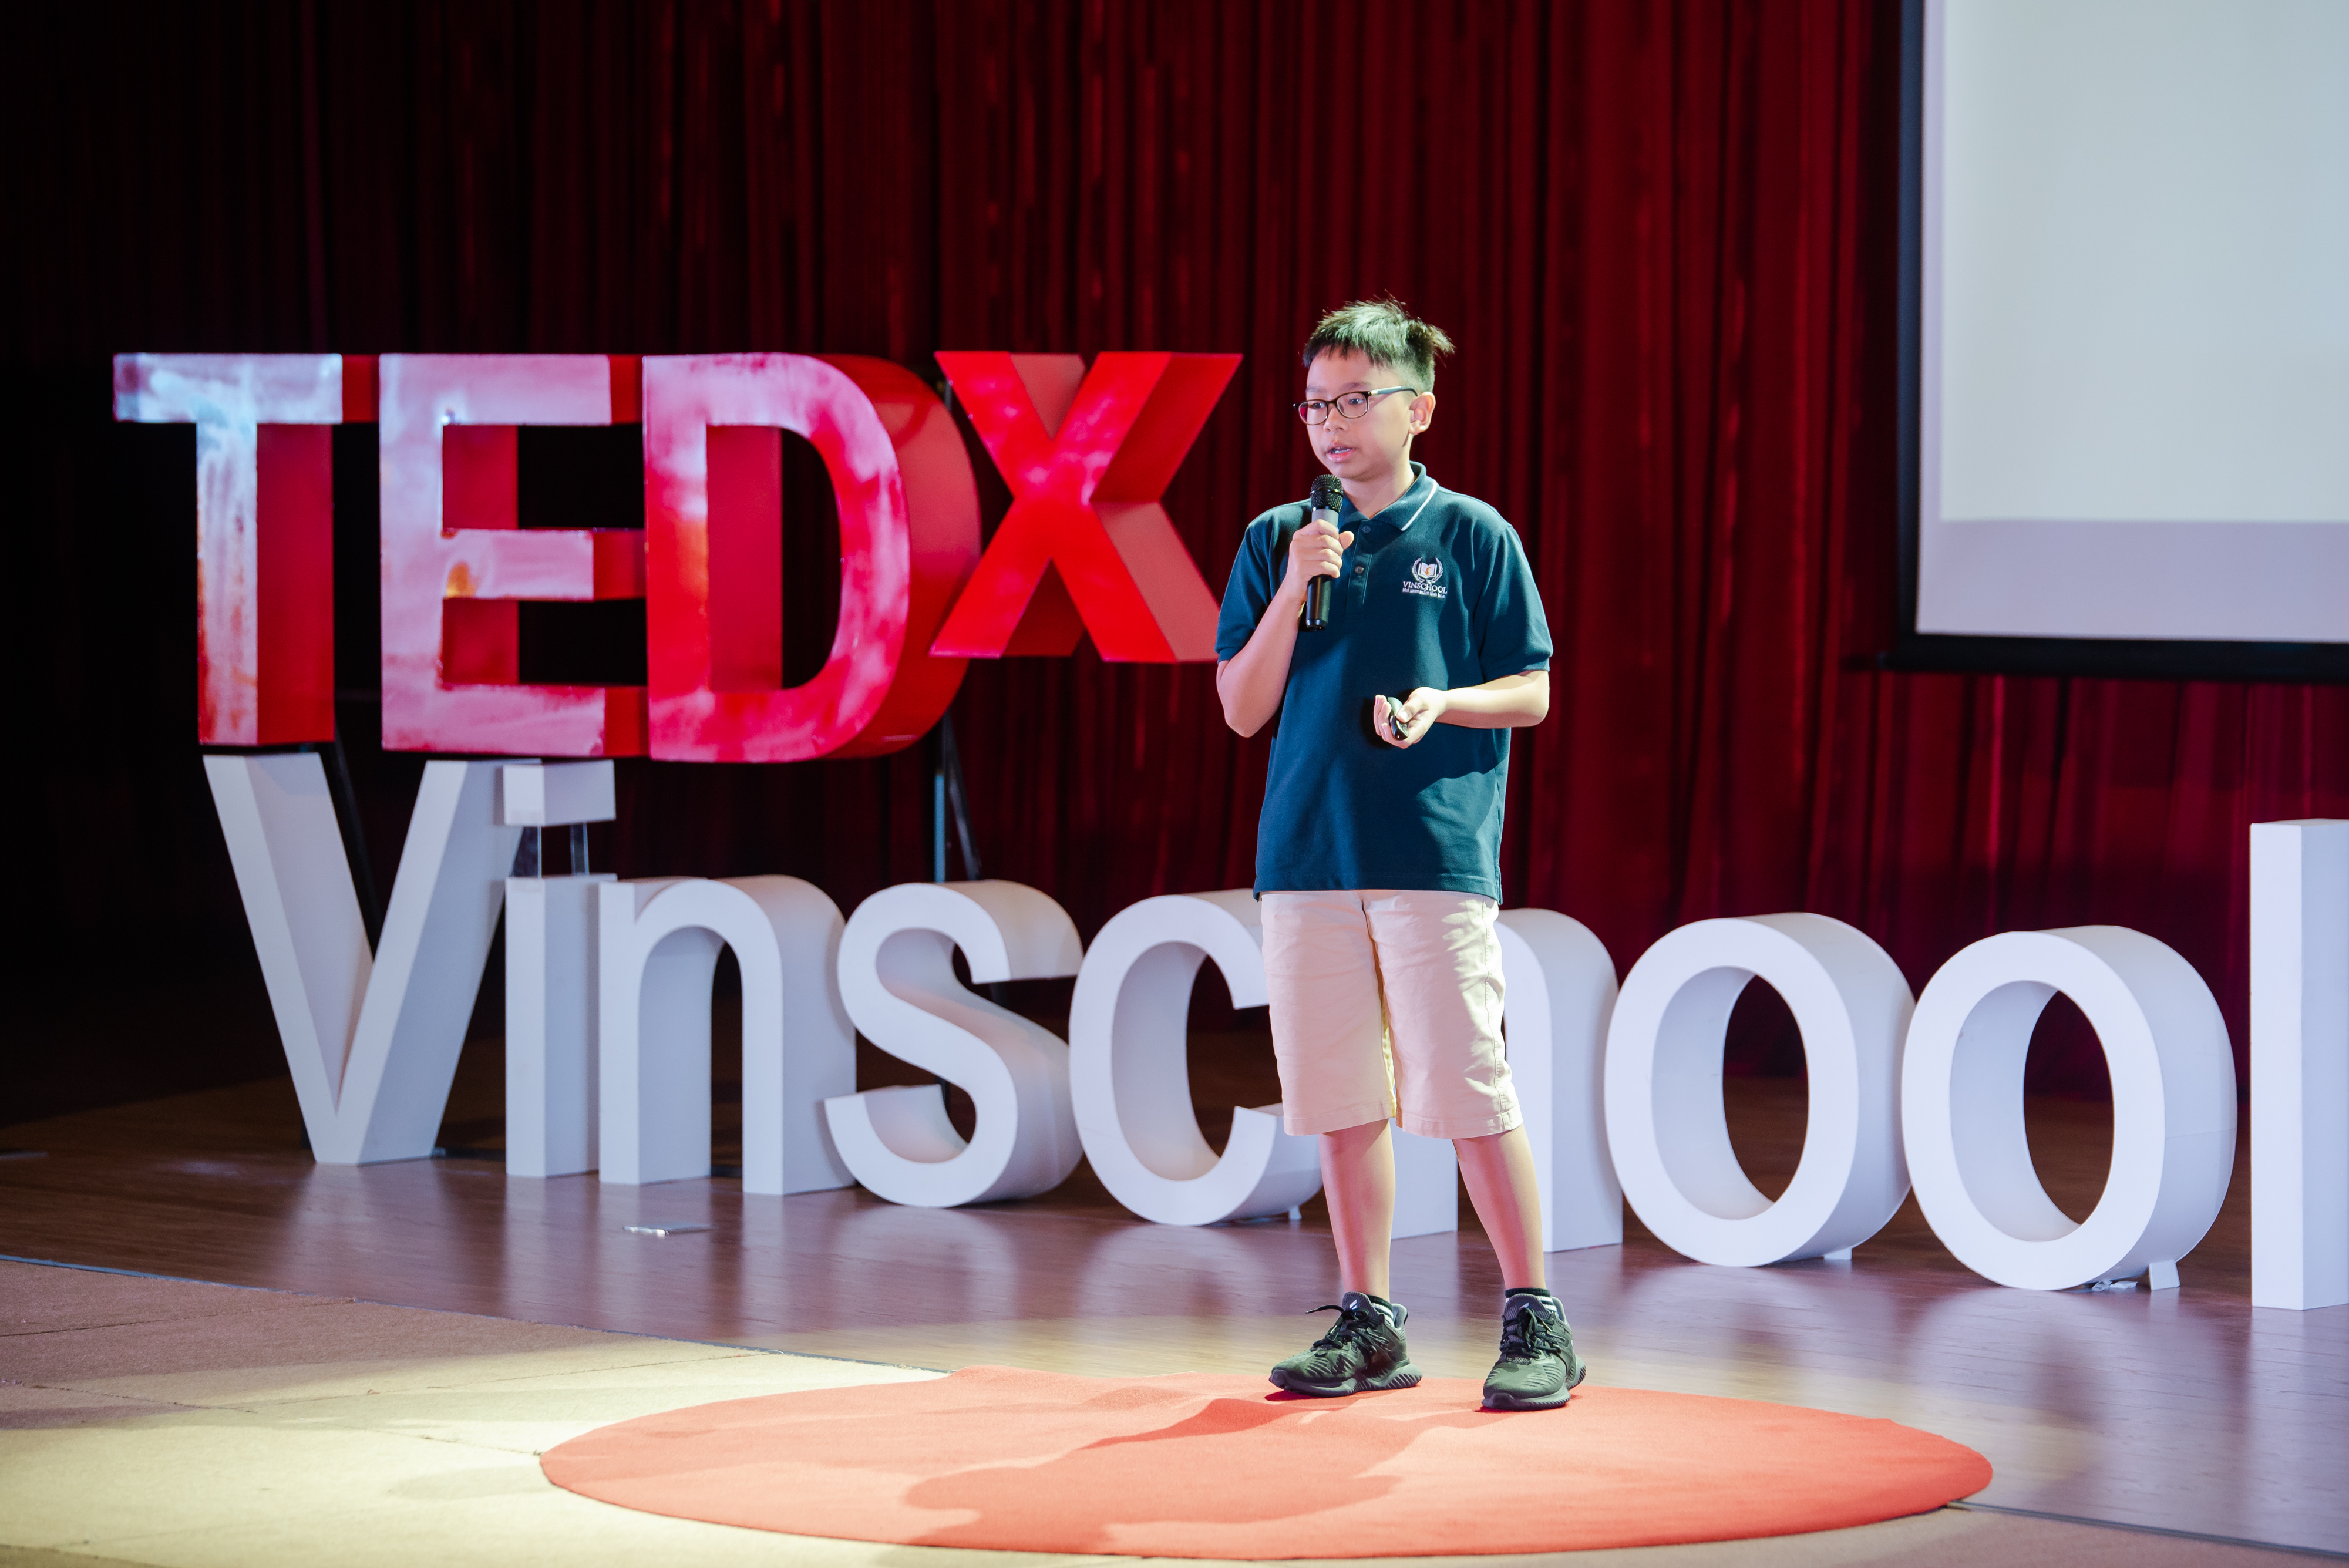 Leaders throughout the years   Nguyen Duc Minh   TEDxVinschoolHanoi